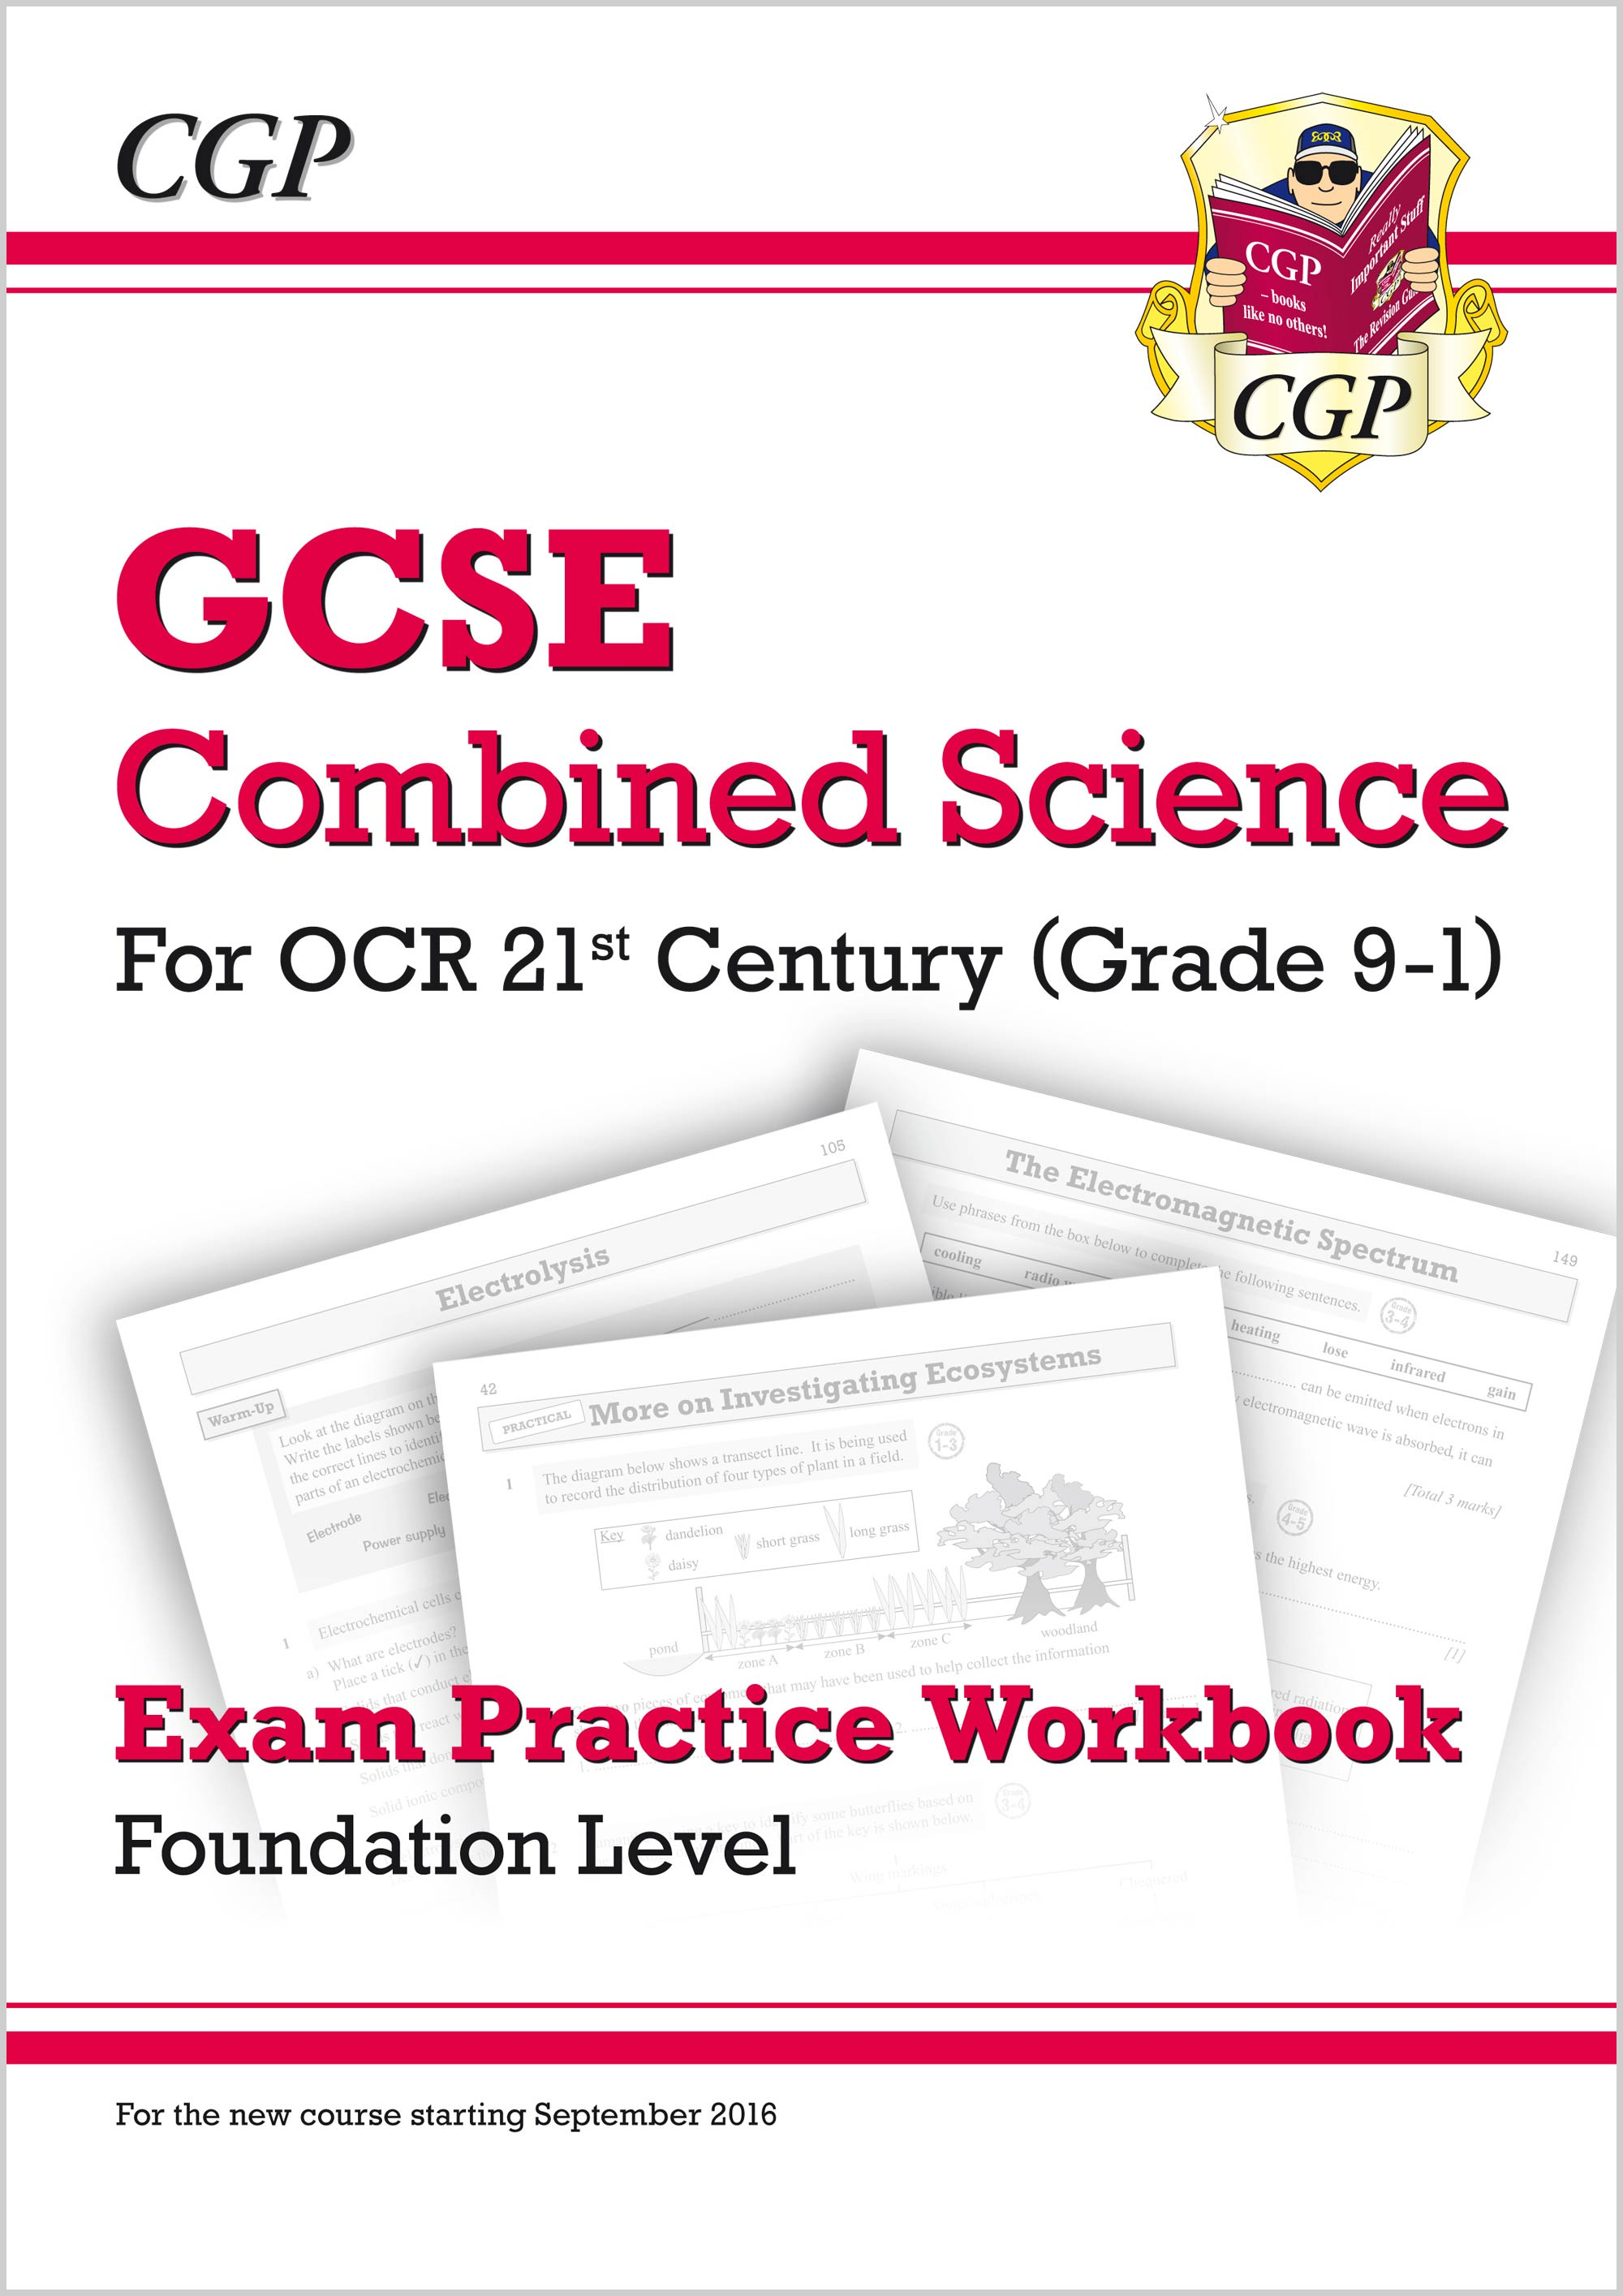 S2FQ41 - Grade 9-1 GCSE Combined Science: OCR 21st Century Exam Practice Workbook - Foundation